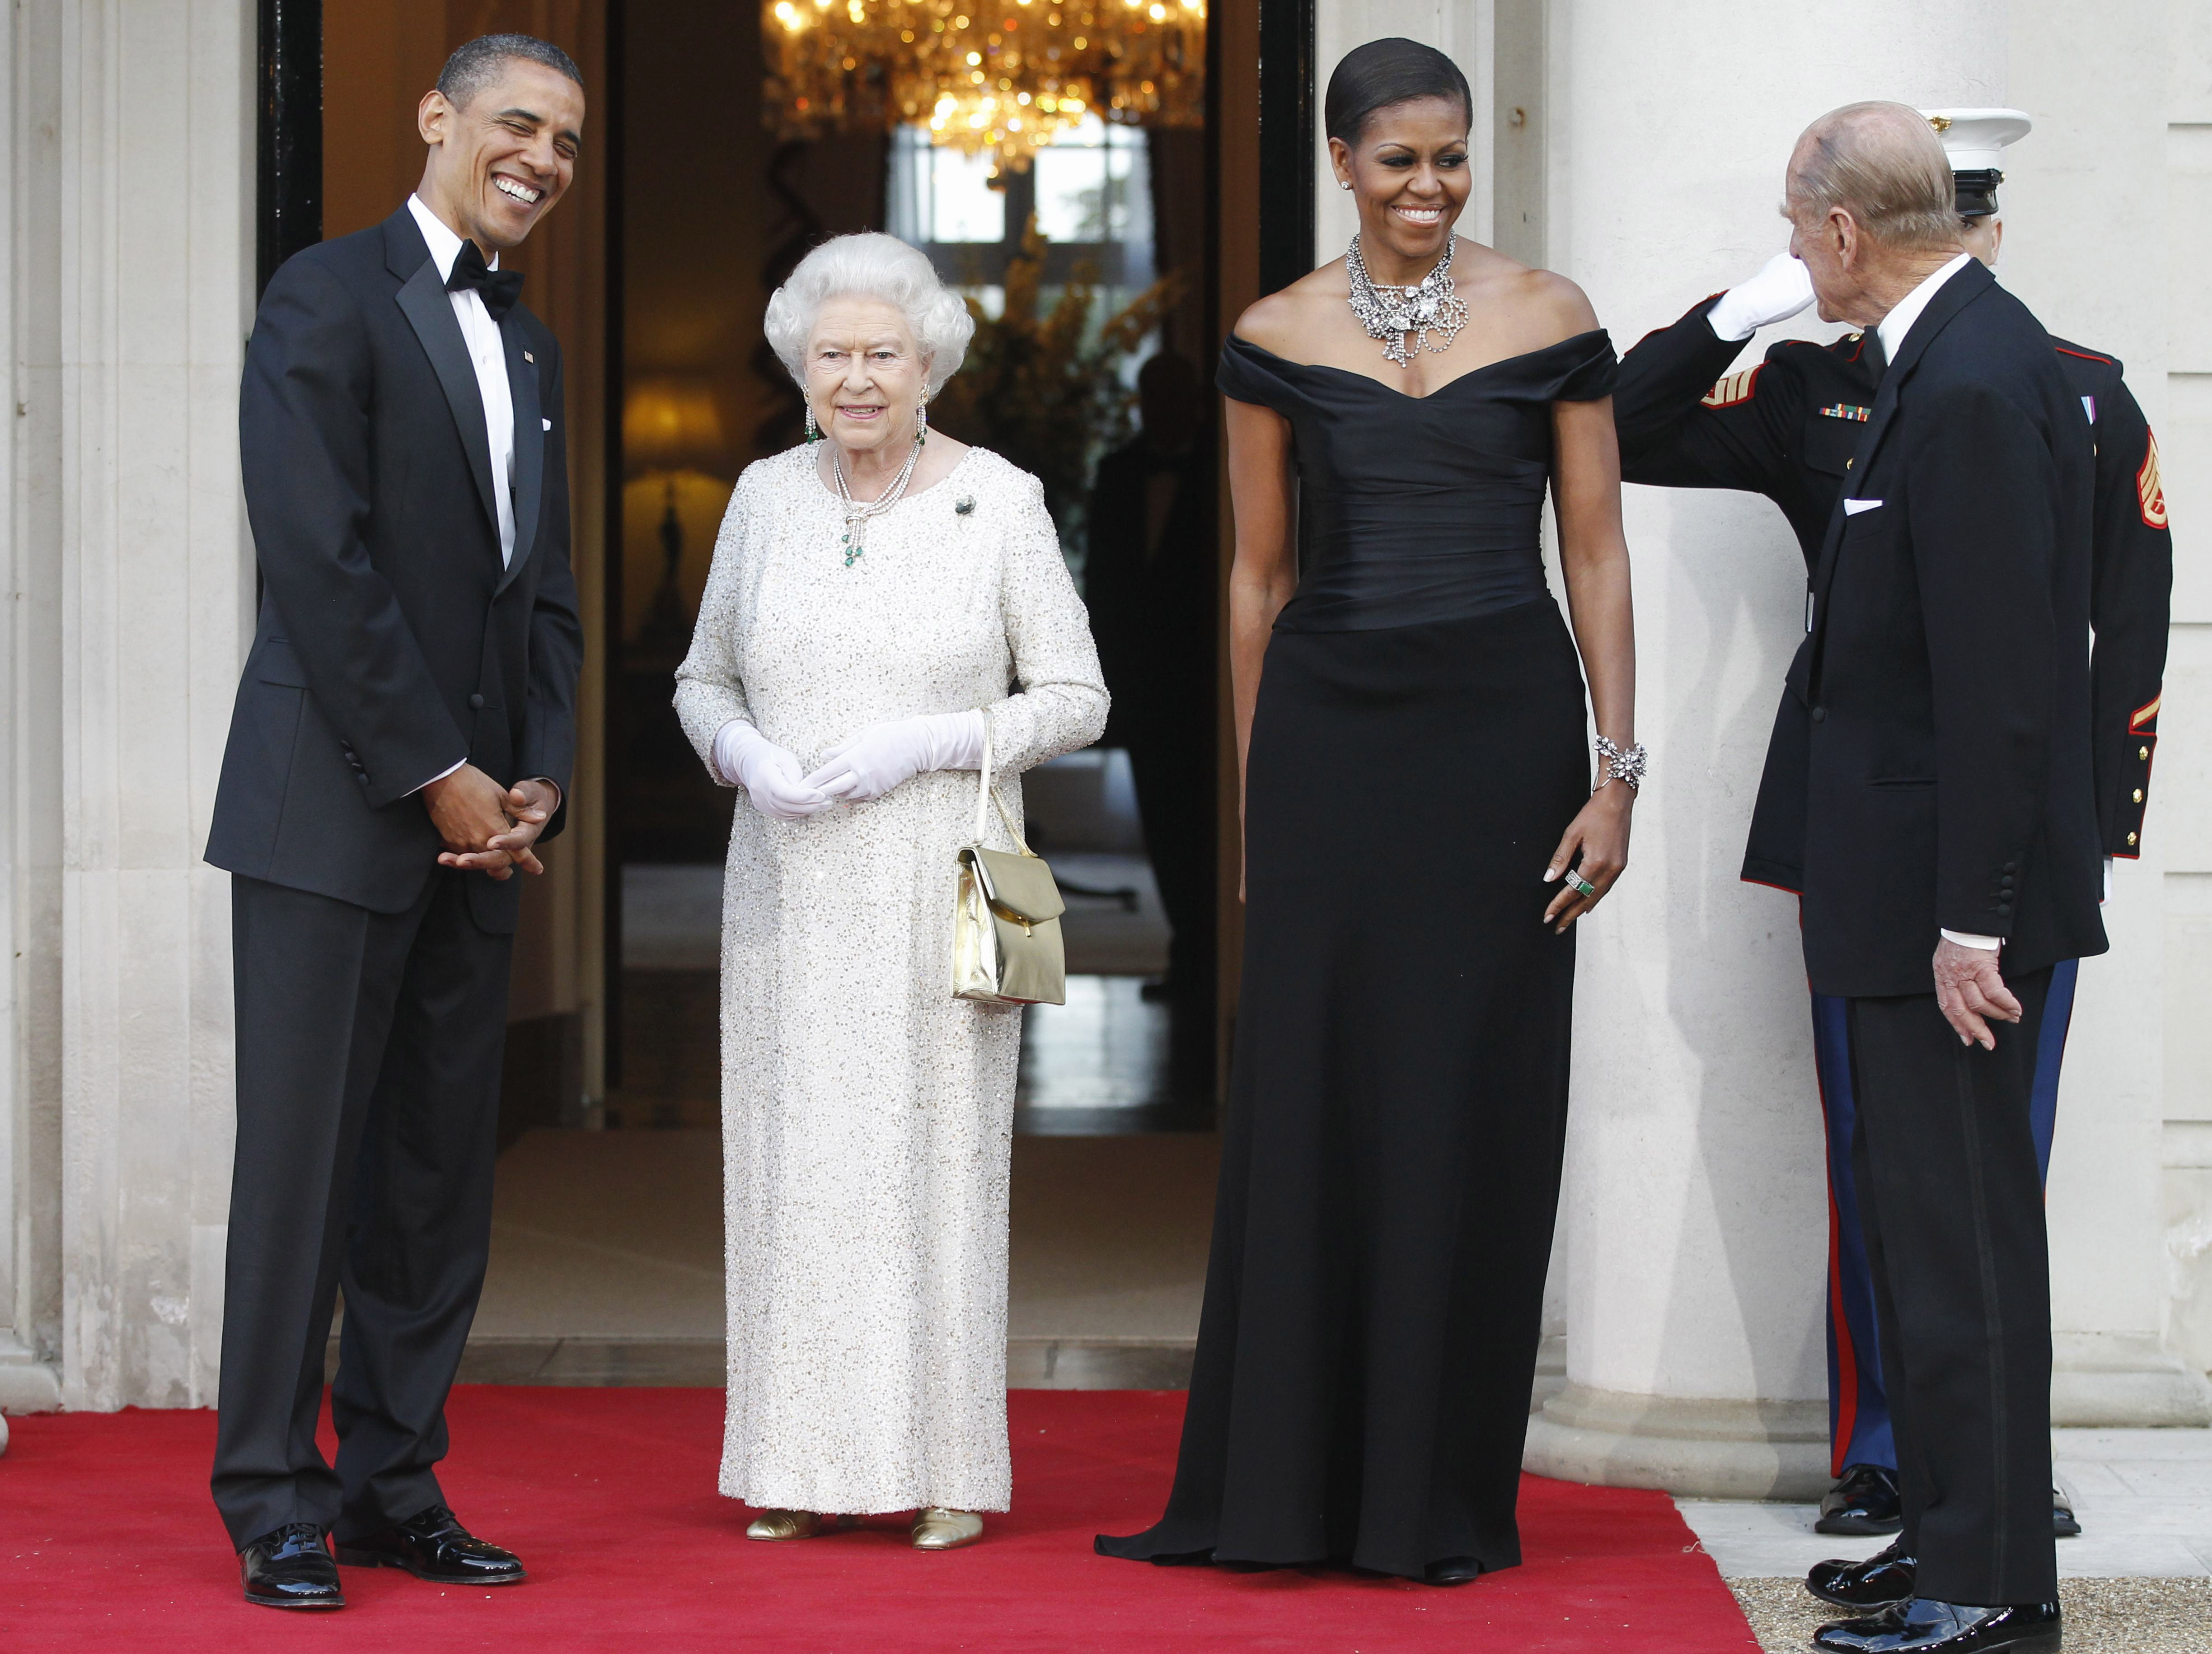 Obama_British_Royals.JPEG-63c8a.jpg